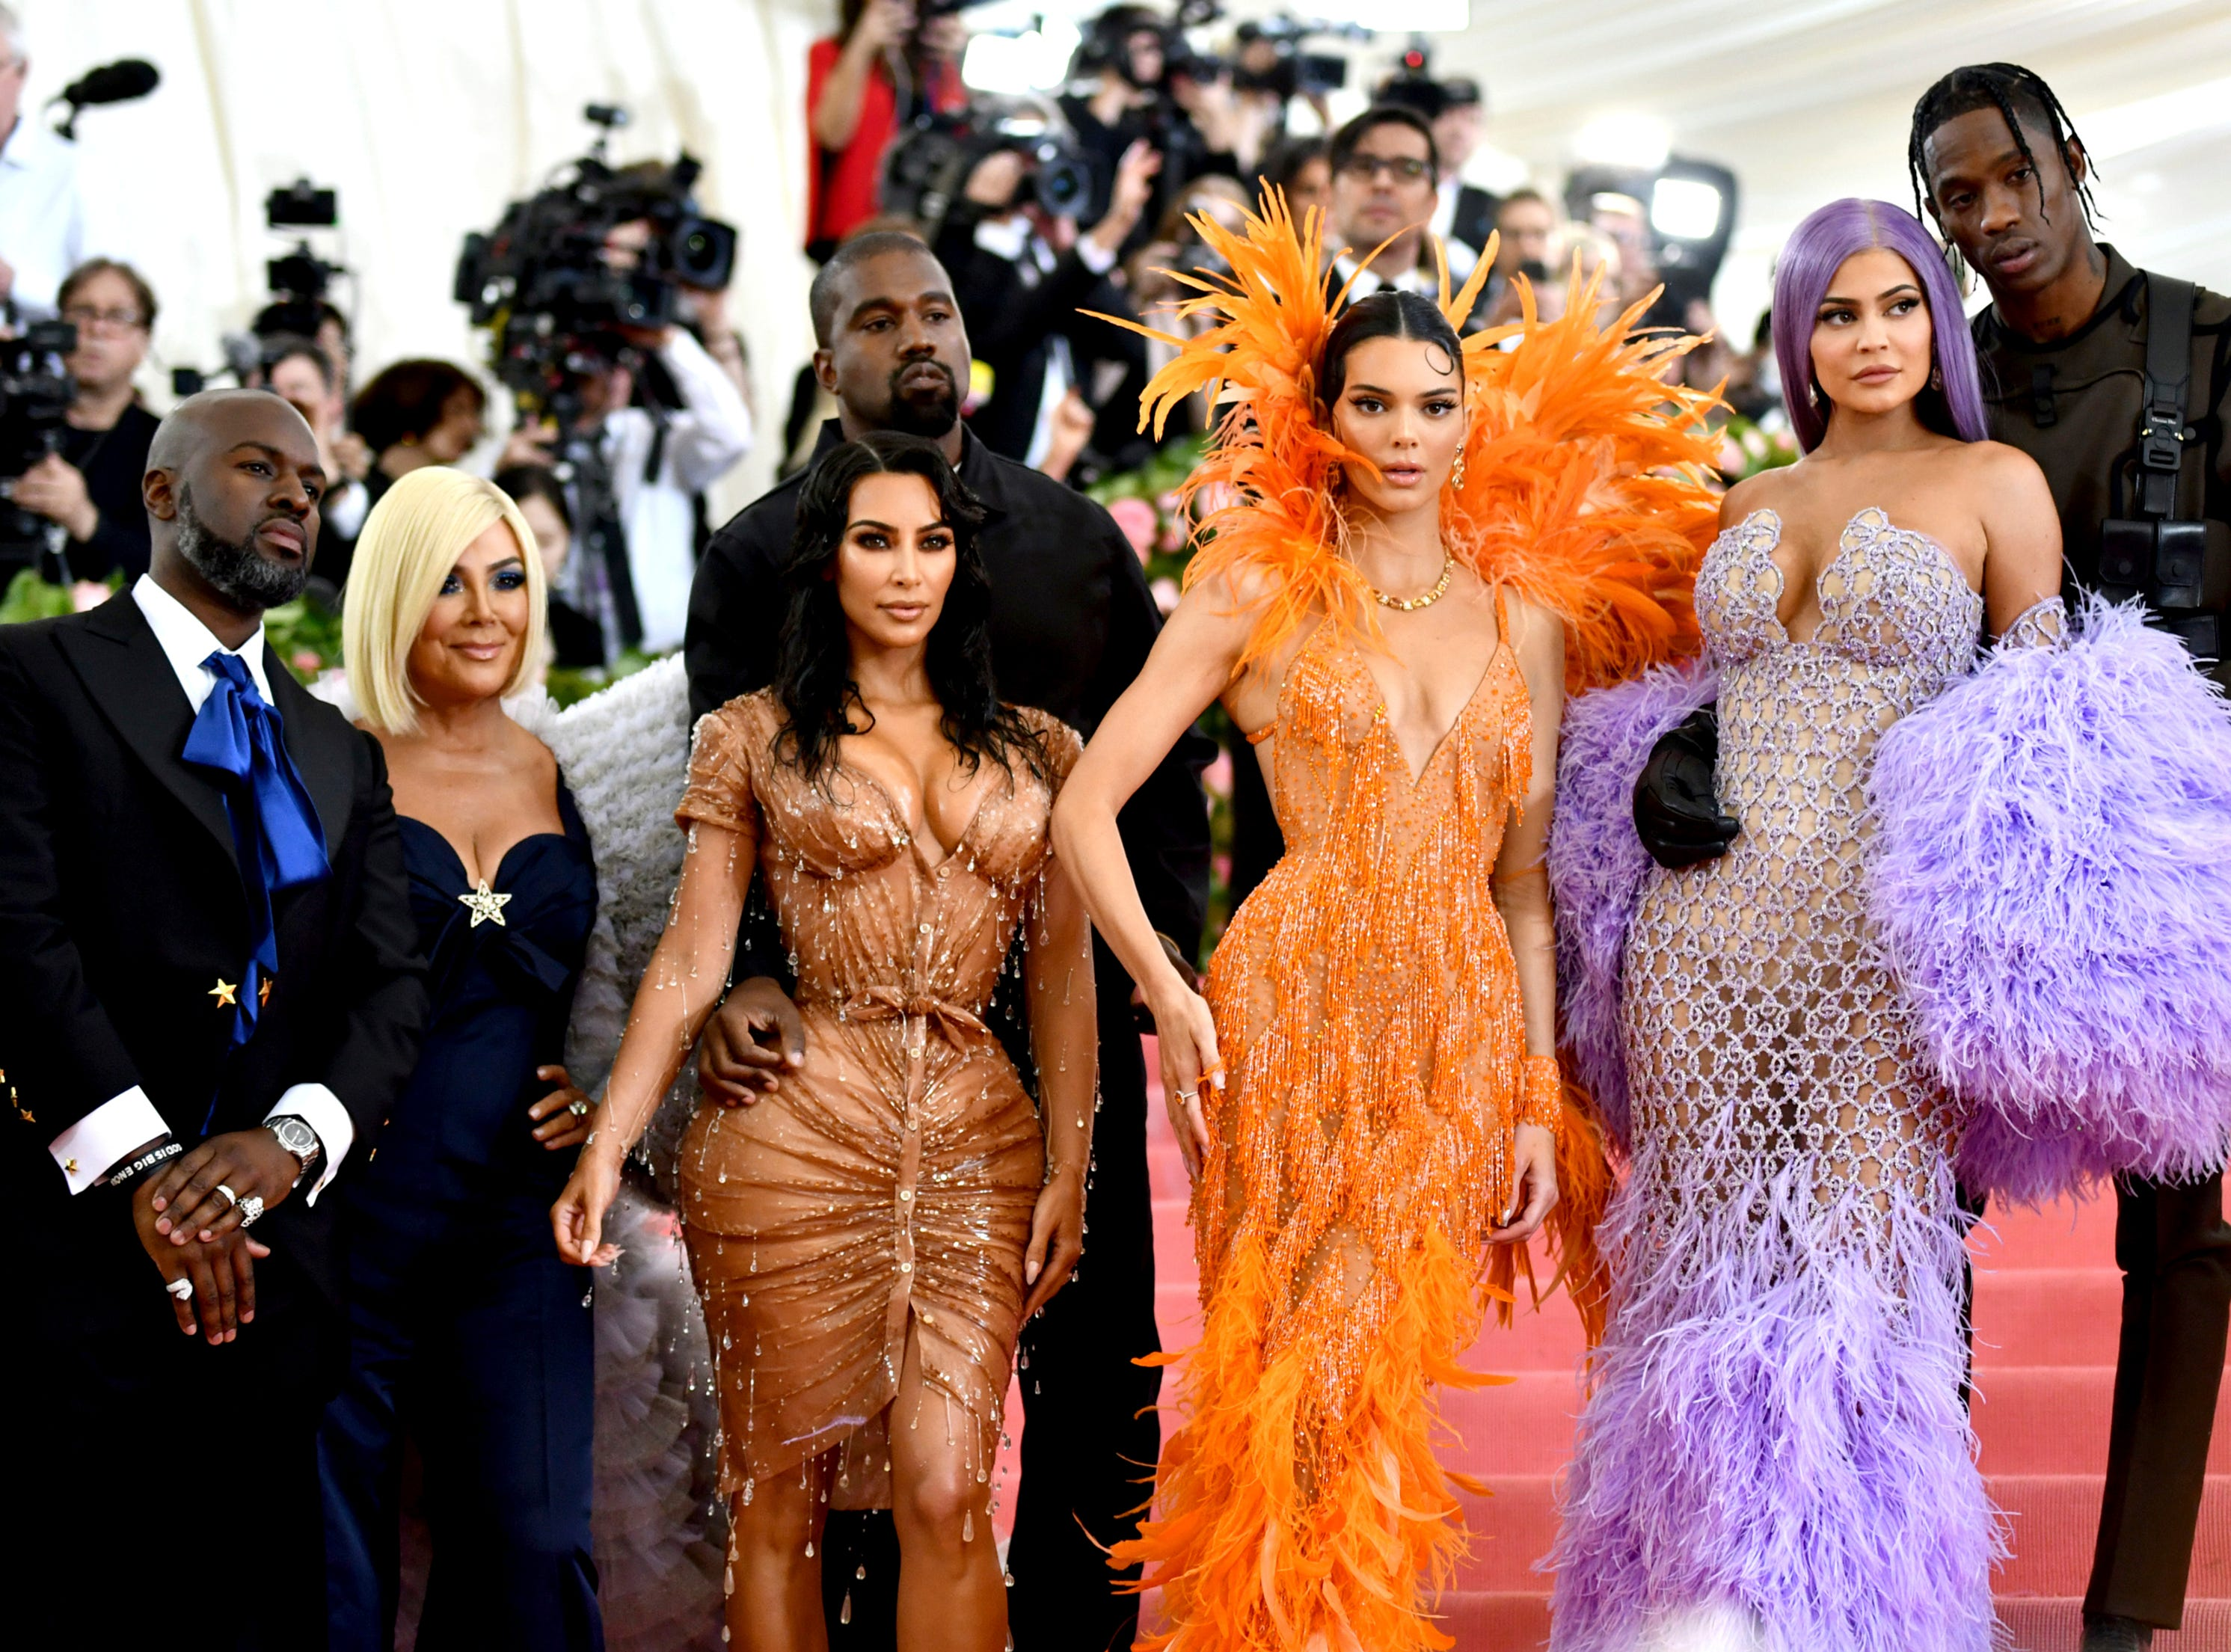 """Corey Gamble, from left, Kris Jenner, Kim Kardashian, Kendall Jenner, Kylie Jenner and Travis Scott attend The Metropolitan Museum of Art's Costume Institute benefit gala celebrating the opening of the """"Camp: Notes on Fashion"""" exhibition on Monday, May 6, 2019, in New York."""